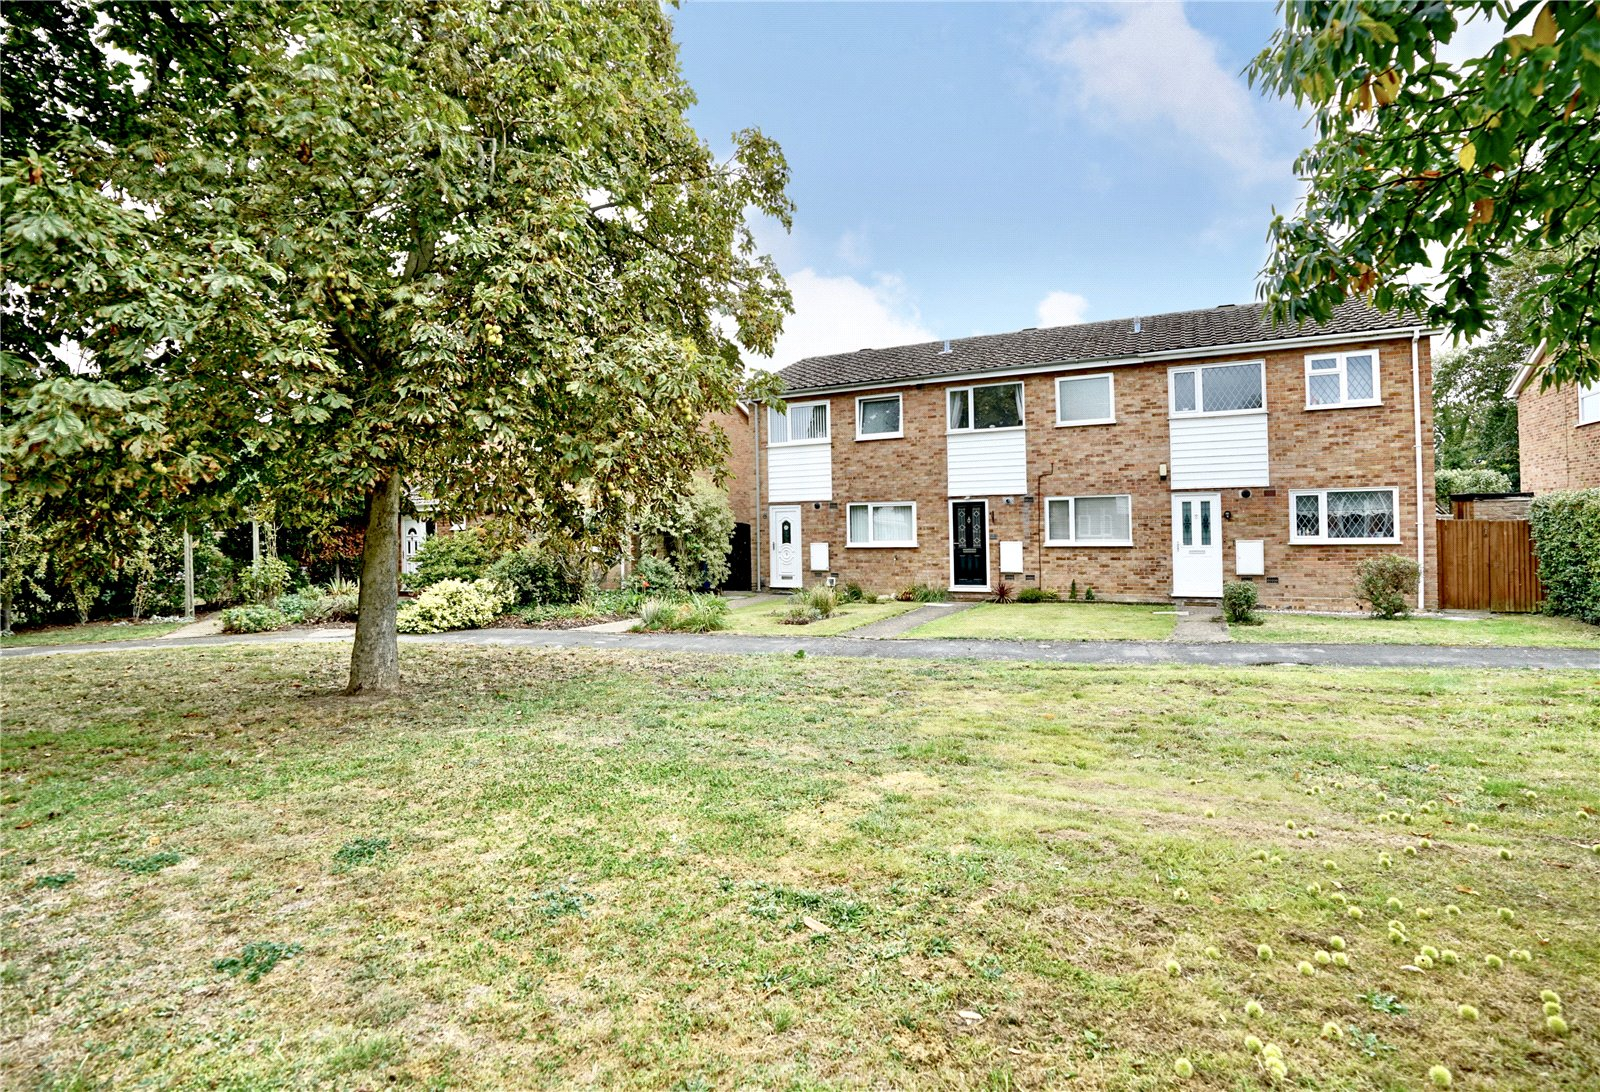 2 bed house for sale in Chestnut Walk, Little Paxton  - Property Image 1